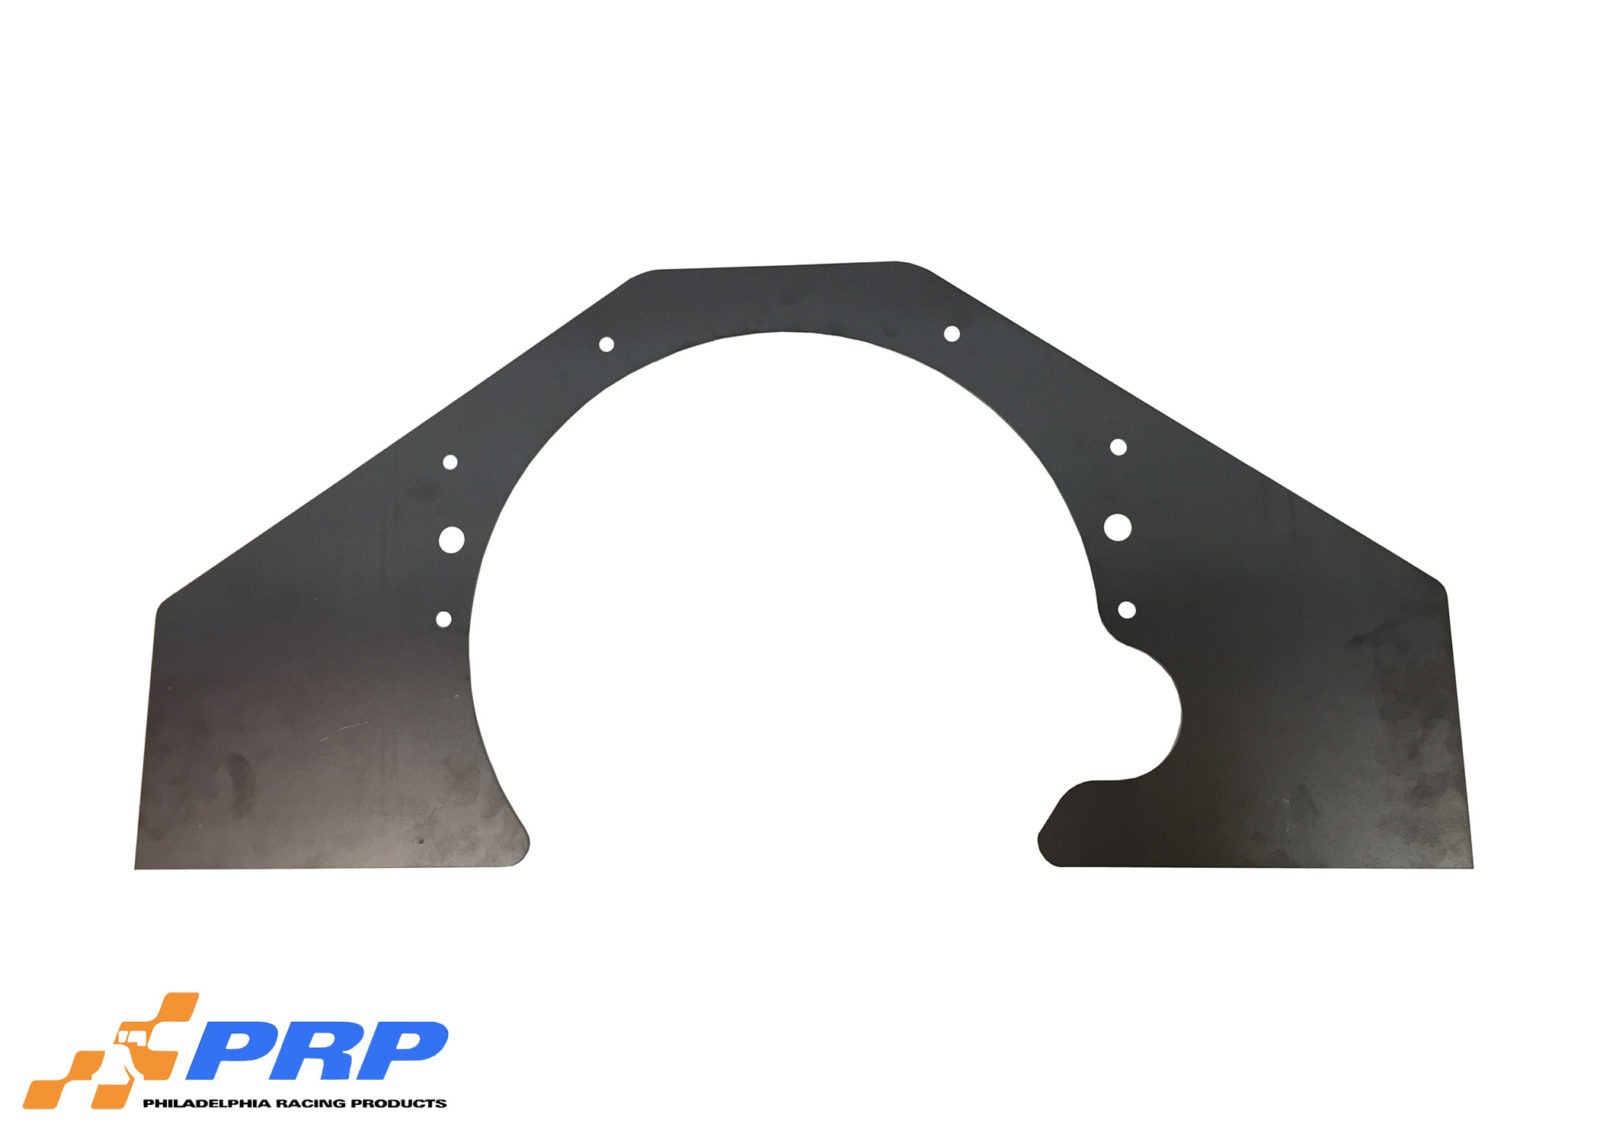 Steel Billet Mid Mount Motor Plate made by PRP Racing Products